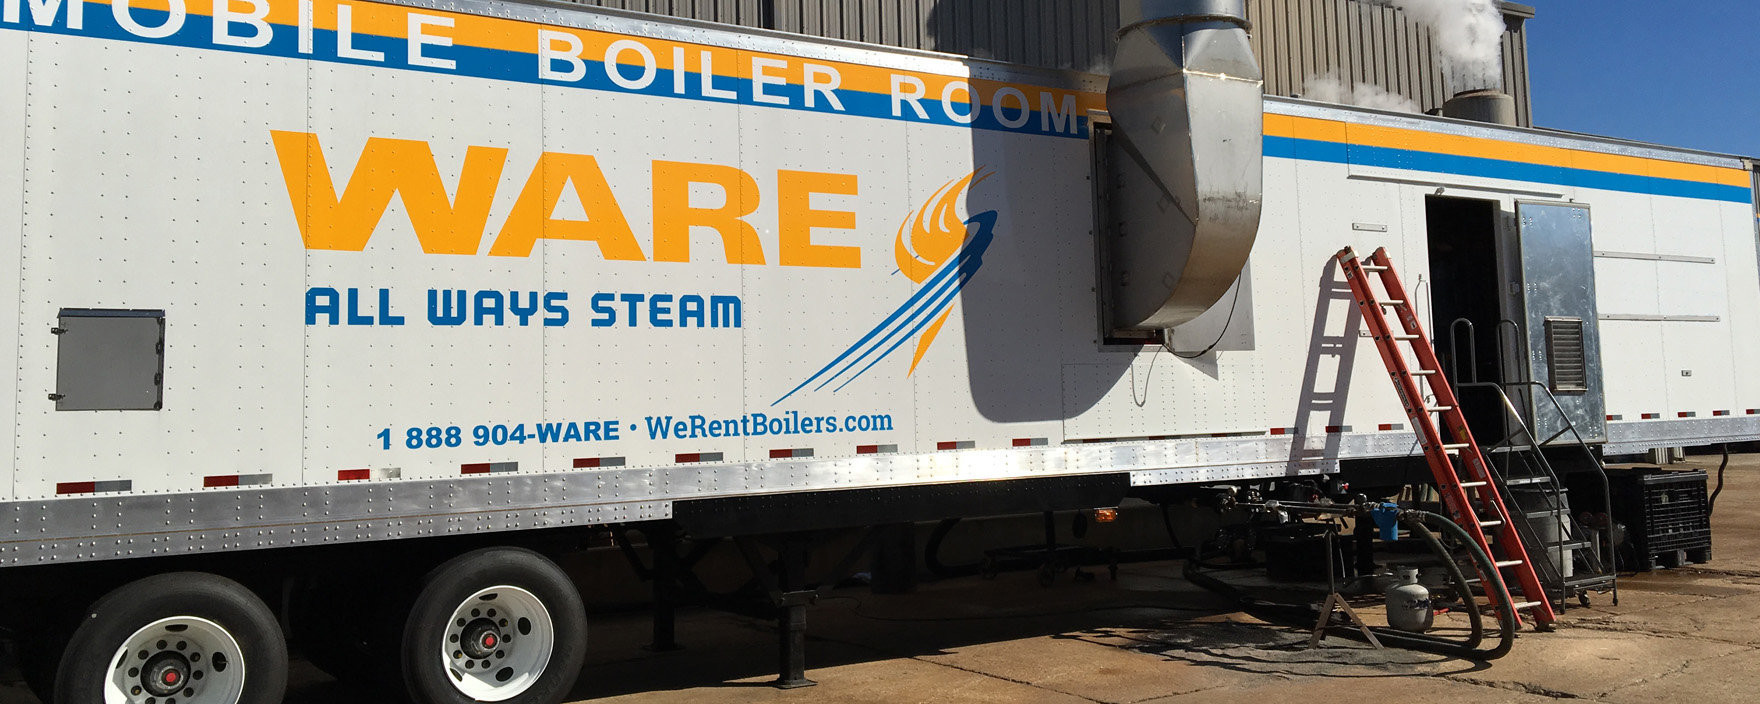 Mobile Boiler Rooms